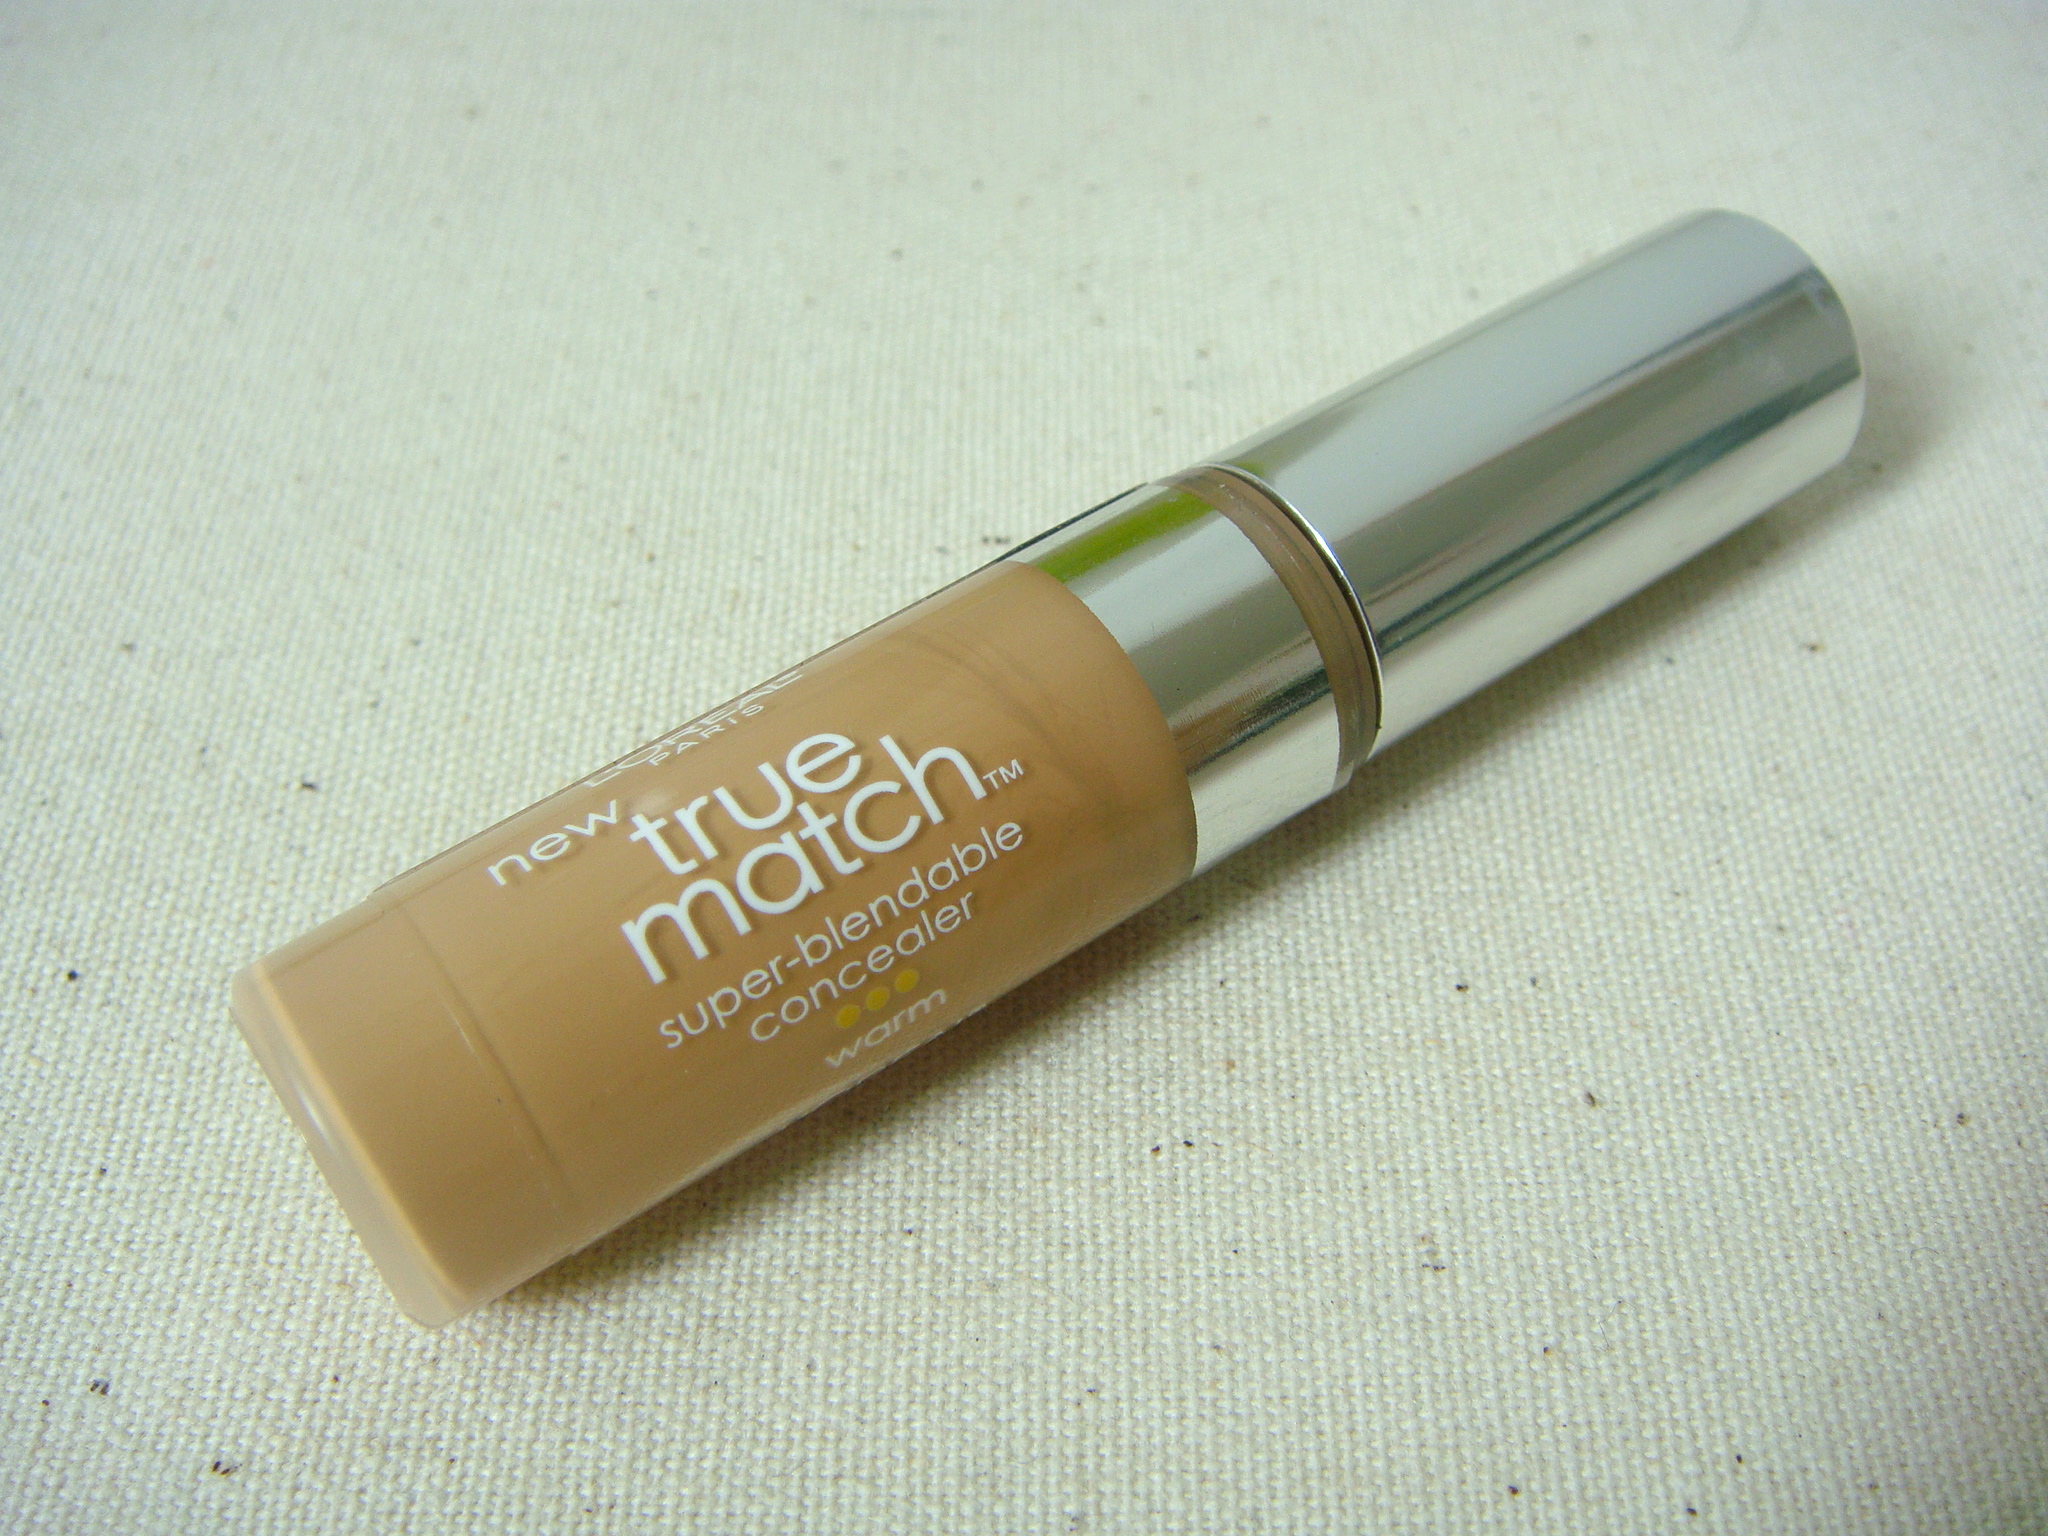 L'Oreal Paris True Match Concealer pic 13-Easy to blend.-By simmi_haswani